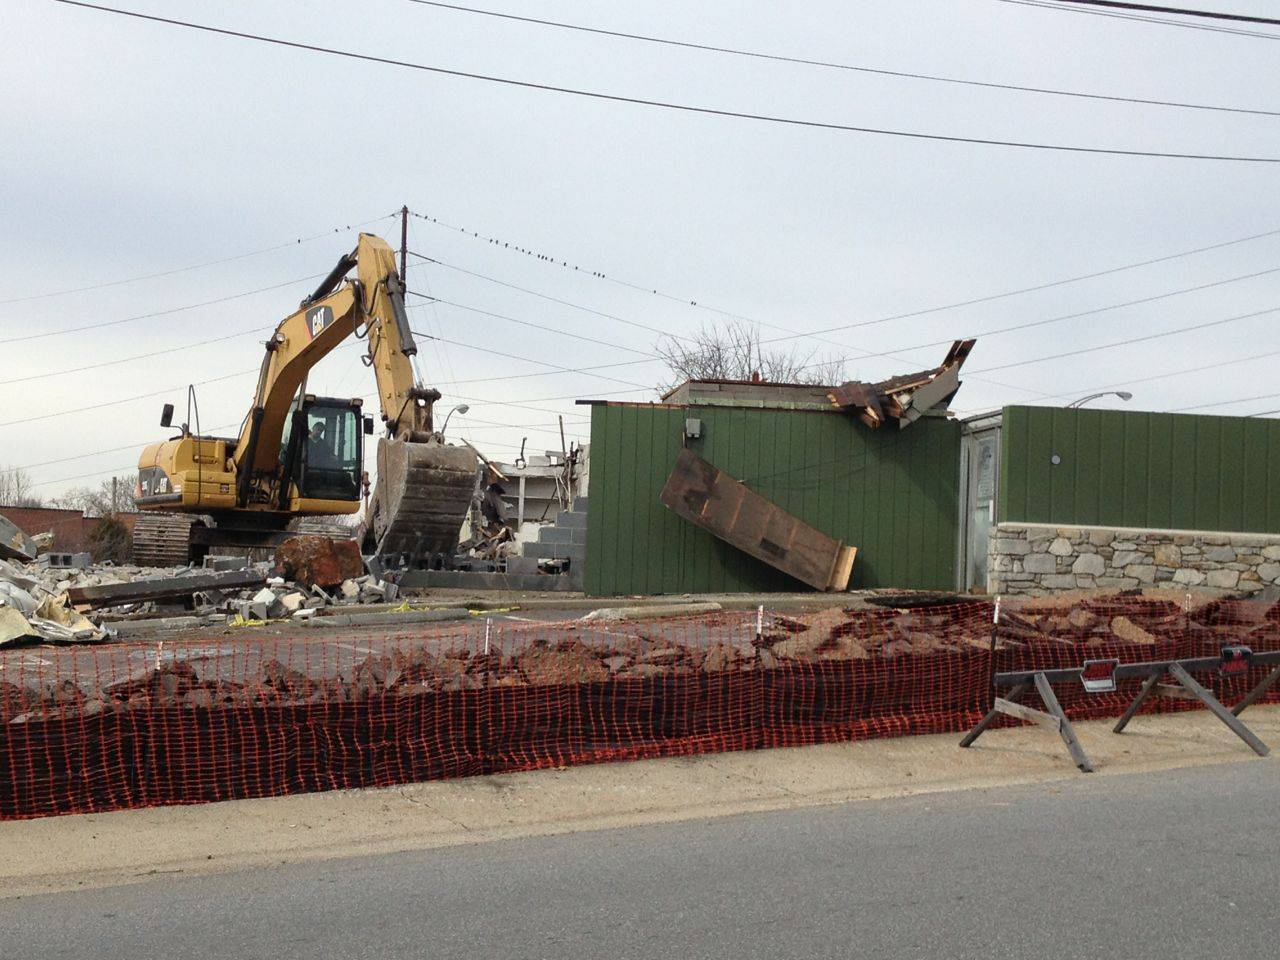 PHOTOS: Demolition of Three Brothers Restaurant on Haywood Street in Asheville